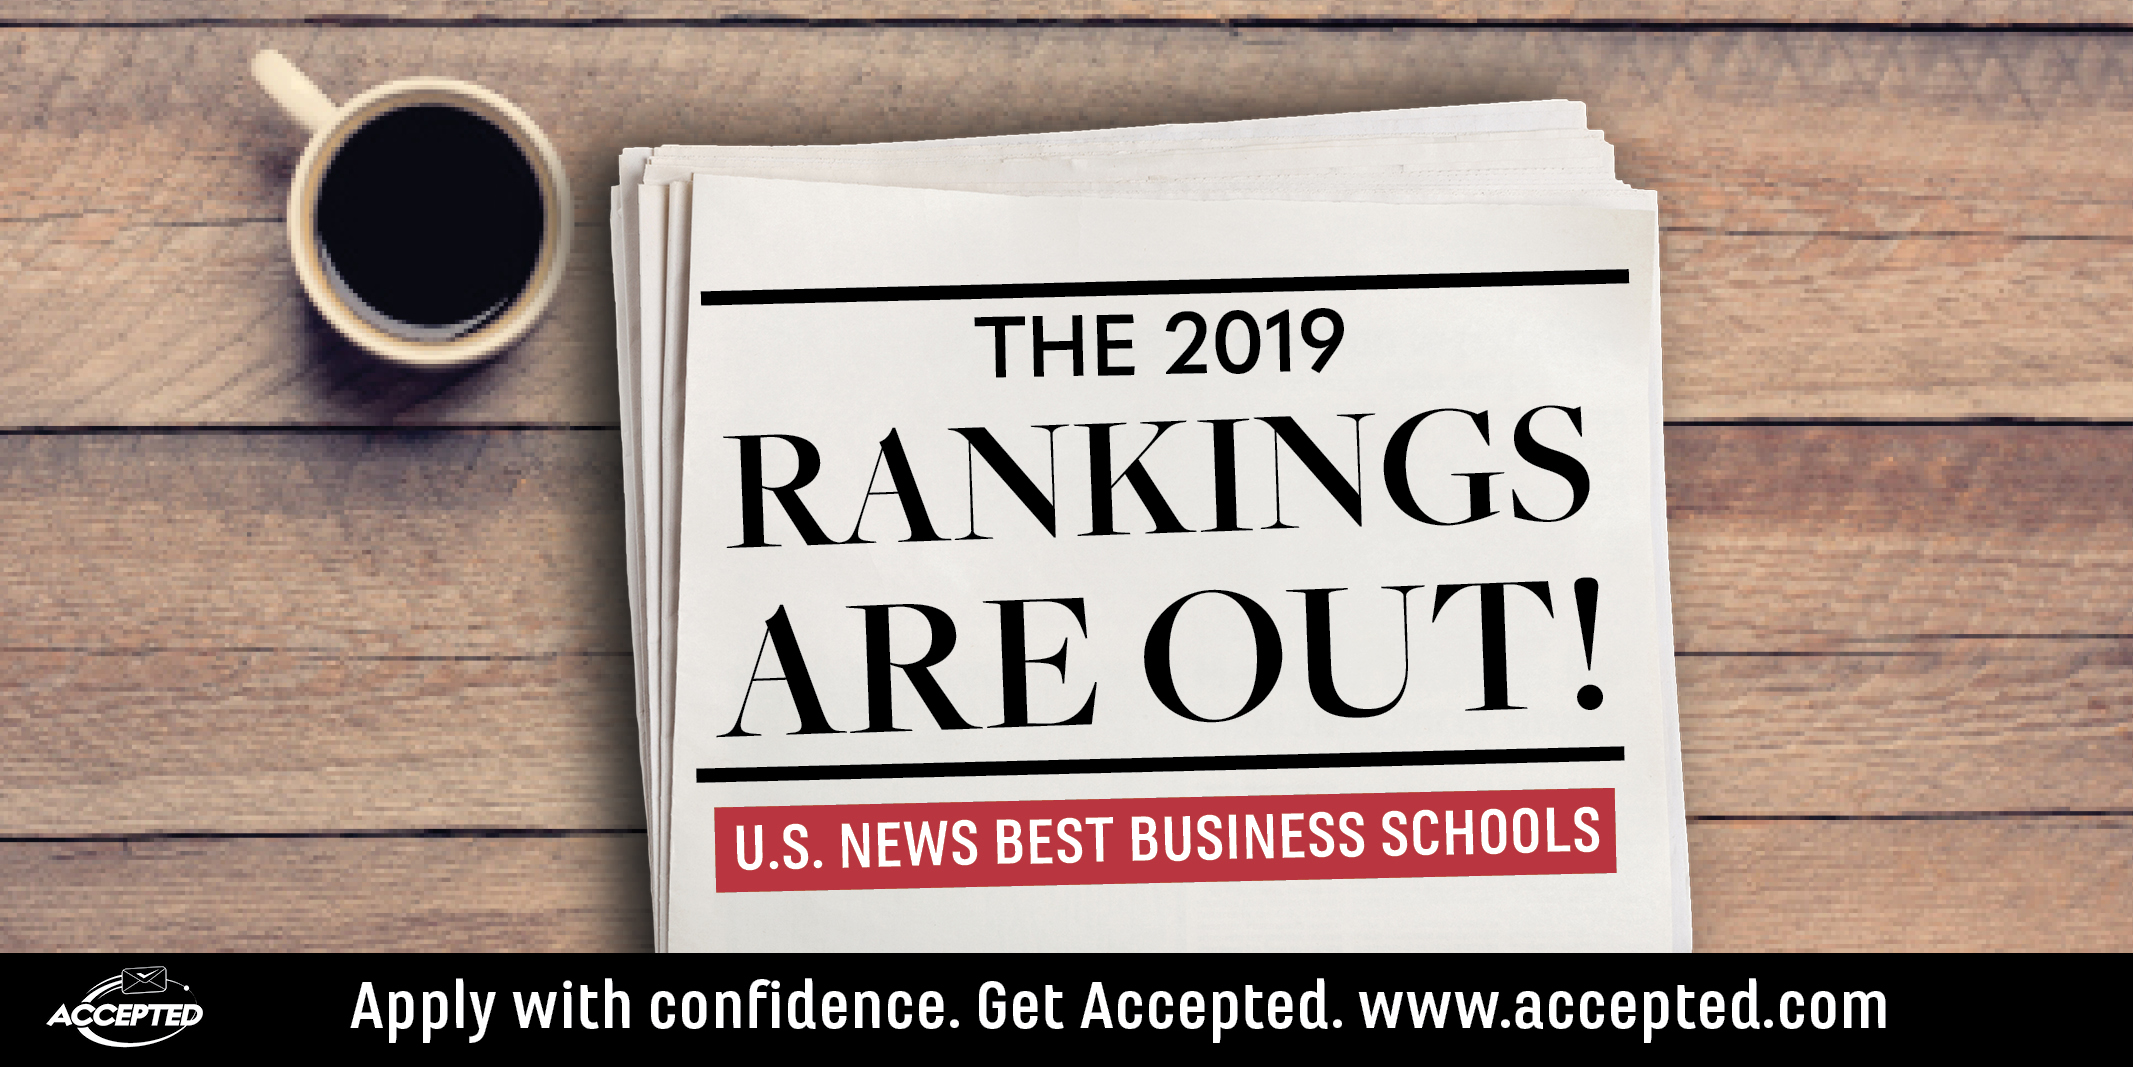 U S  News & World Report's 2019 Best Business Schools/MBA